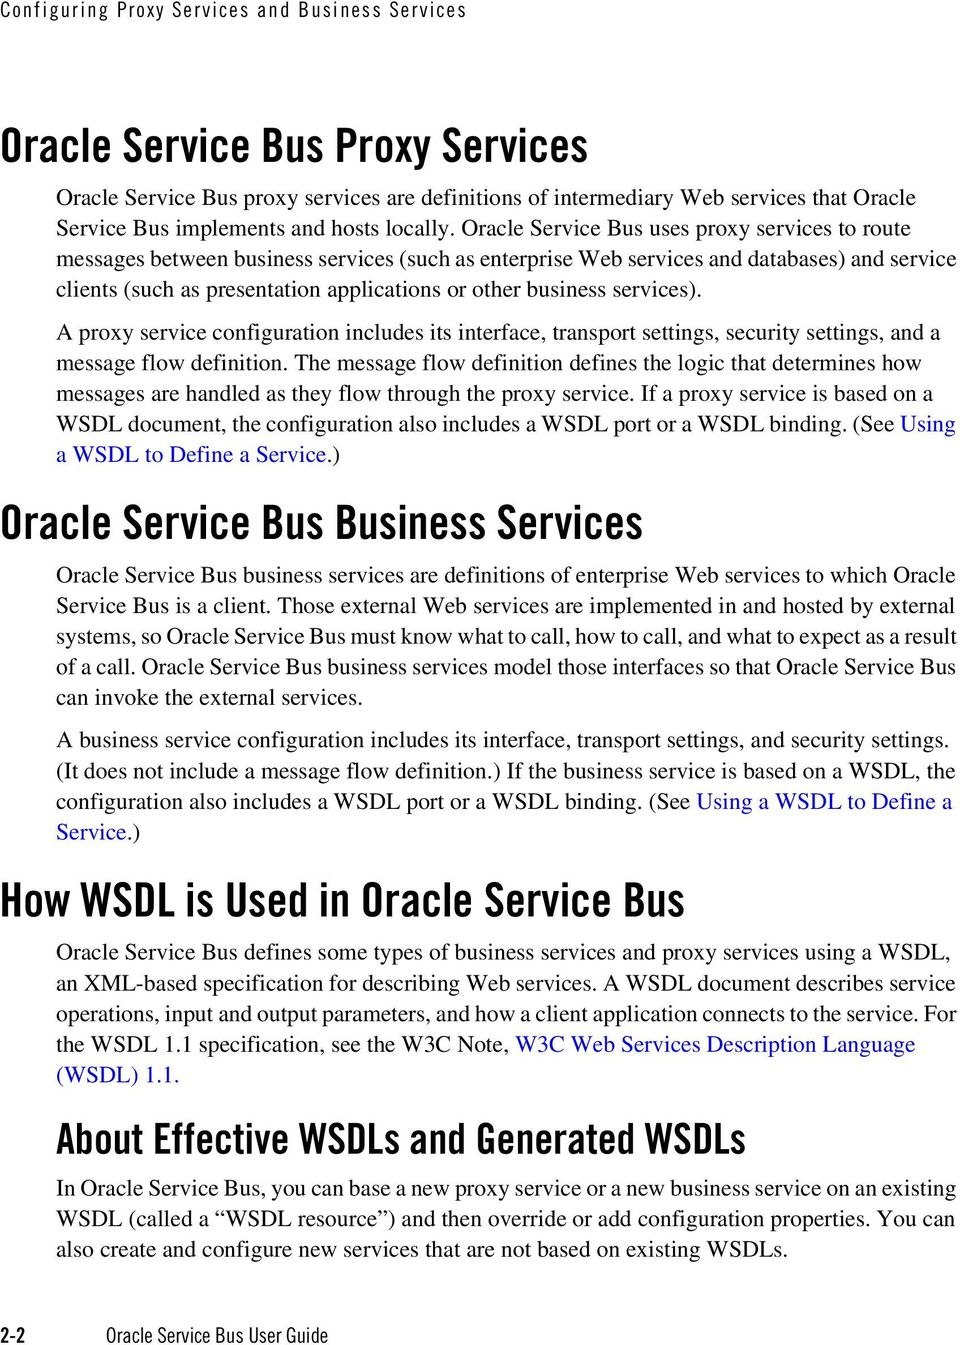 Oracle Service Bus uses proxy services to route messages between business services (such as enterprise Web services and databases) and service clients (such as presentation applications or other